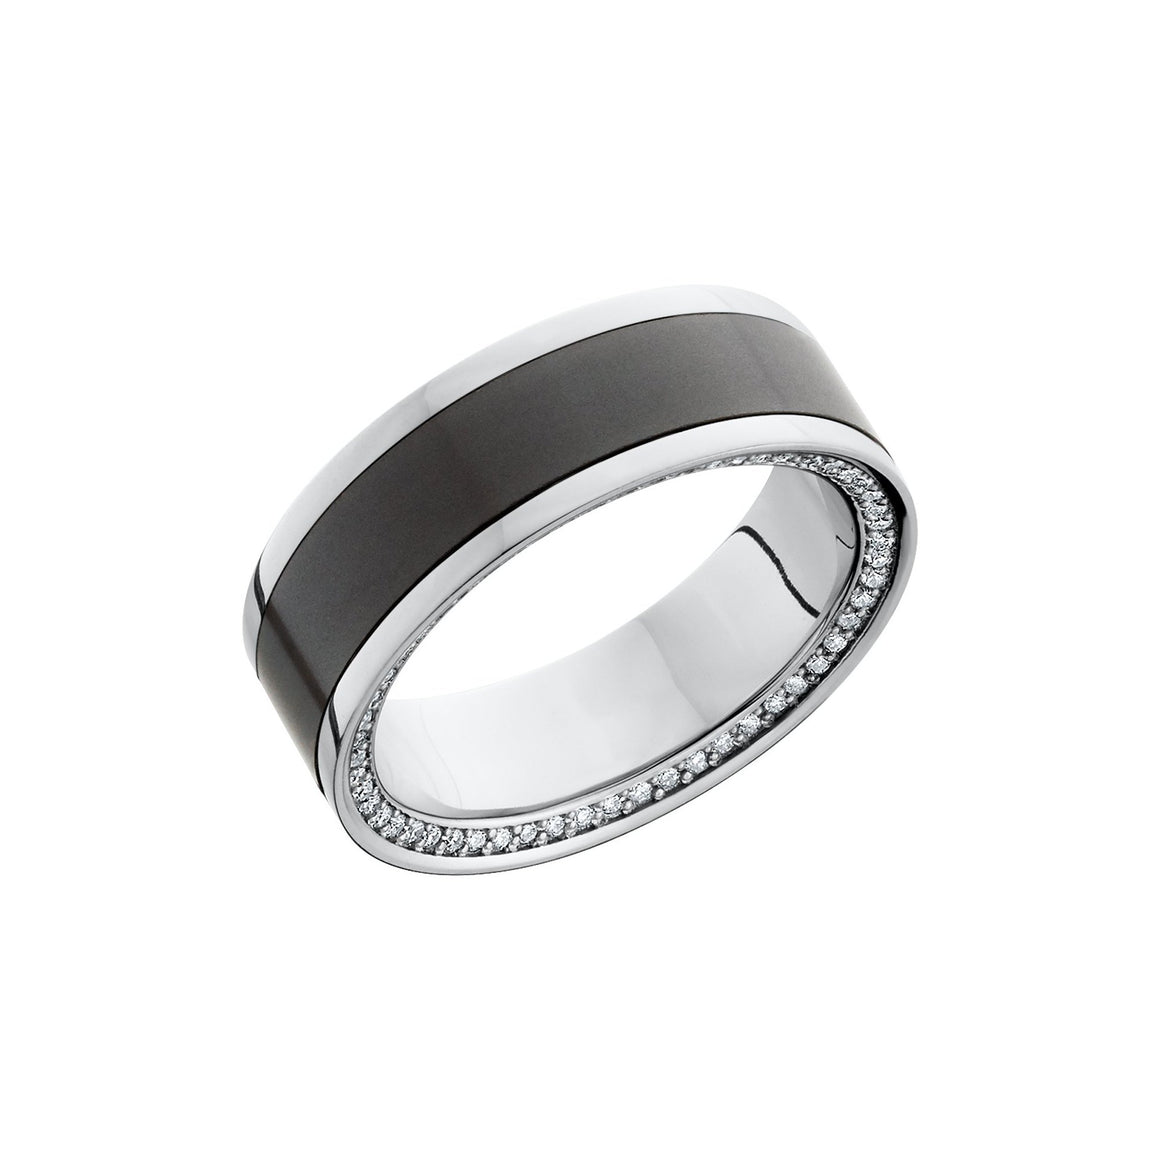 Zeus Platinum Band with Elysium Black Diamond Inlay and a Reverse Diamond Bevel - Talisman Collection Fine Jewelers